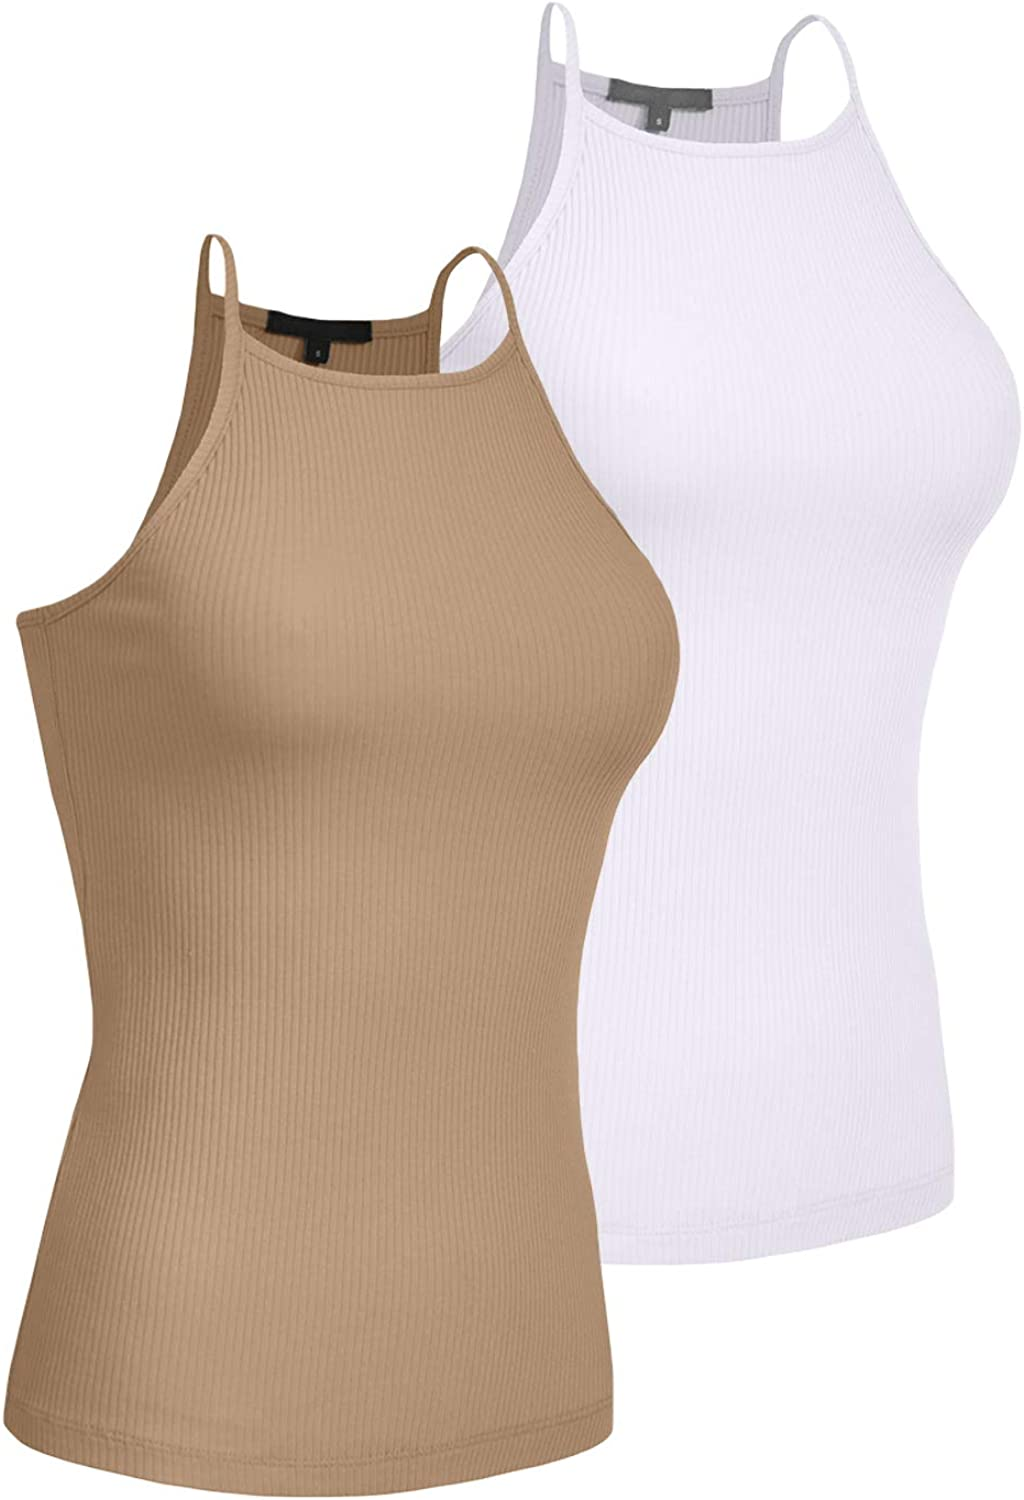 2 Pack S-3XL LOVNY Womens Active High Neck Simple Casual Spaghetti Strep Ribbed Camisole Tank Top J